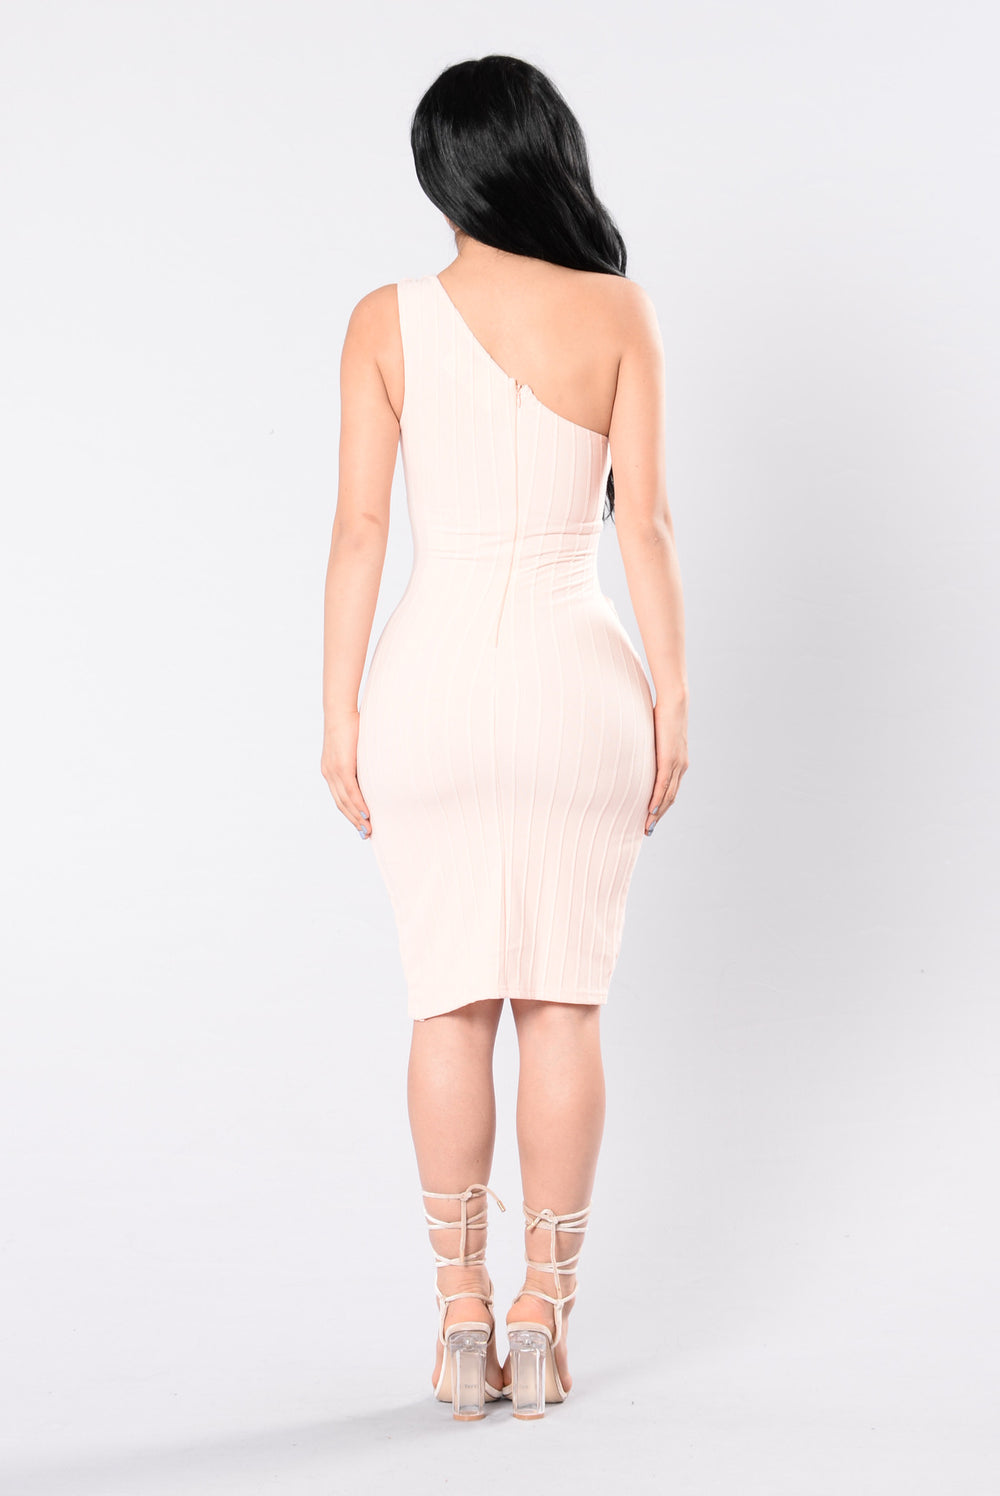 Public Affair Dress - Pink